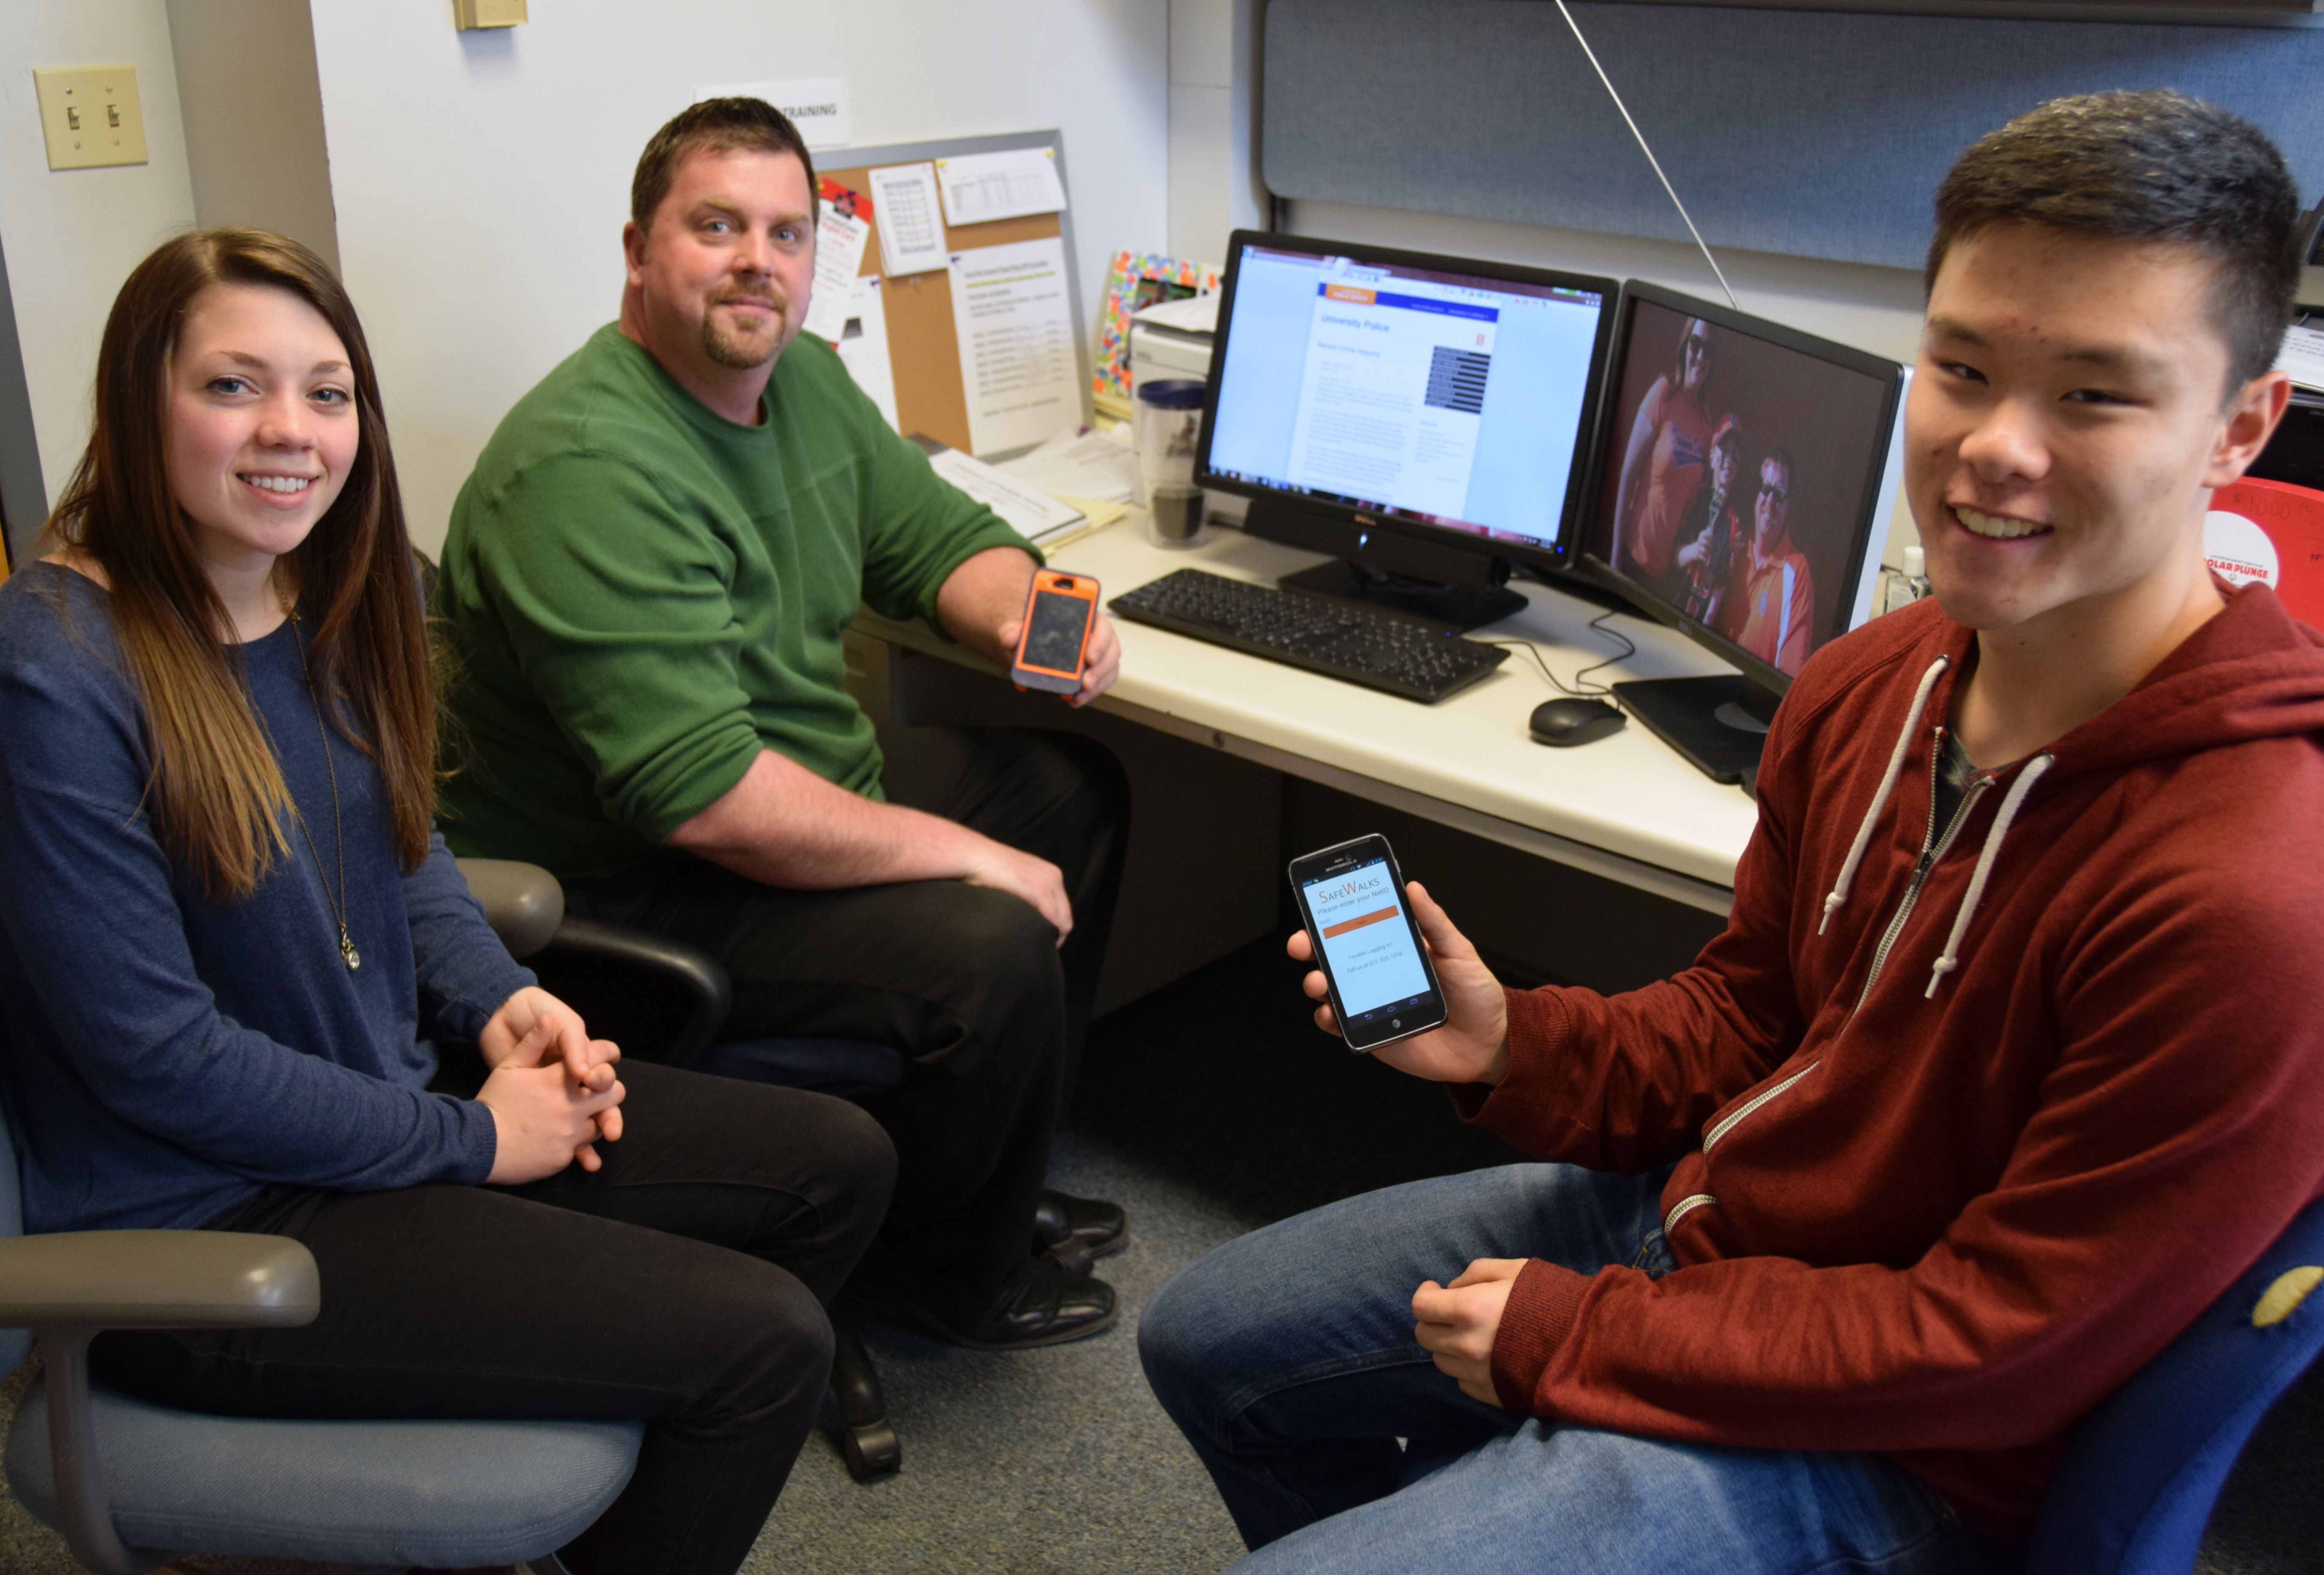 From left: U. of I. student patrol officer Taylor Franzen, Security Coordinator Ryan Johnson and U. of I. student patrol officer Michael Hao display the new SafeWalks app, which is to be released within the next few weeks.